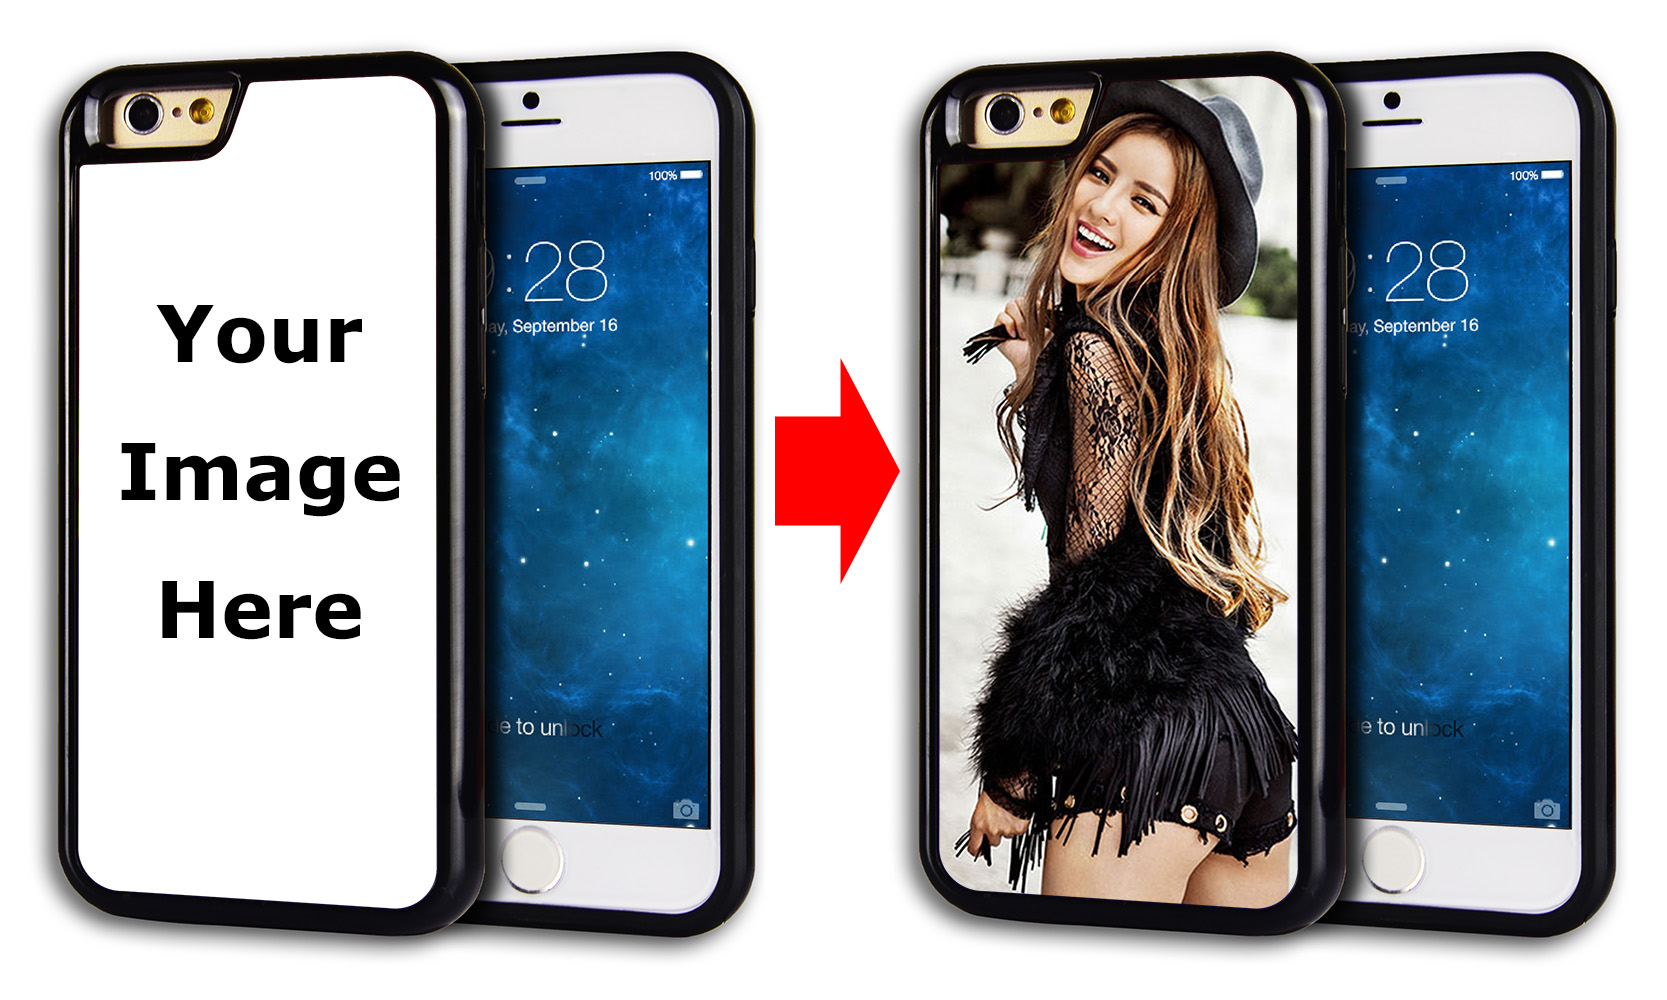 Rugged rubber dual layer hybrid hard case skin cover for iPhone 6 with  customized photo personalized iphone 6 cases - personalized gifts for men  and women 2f5b9d62a4